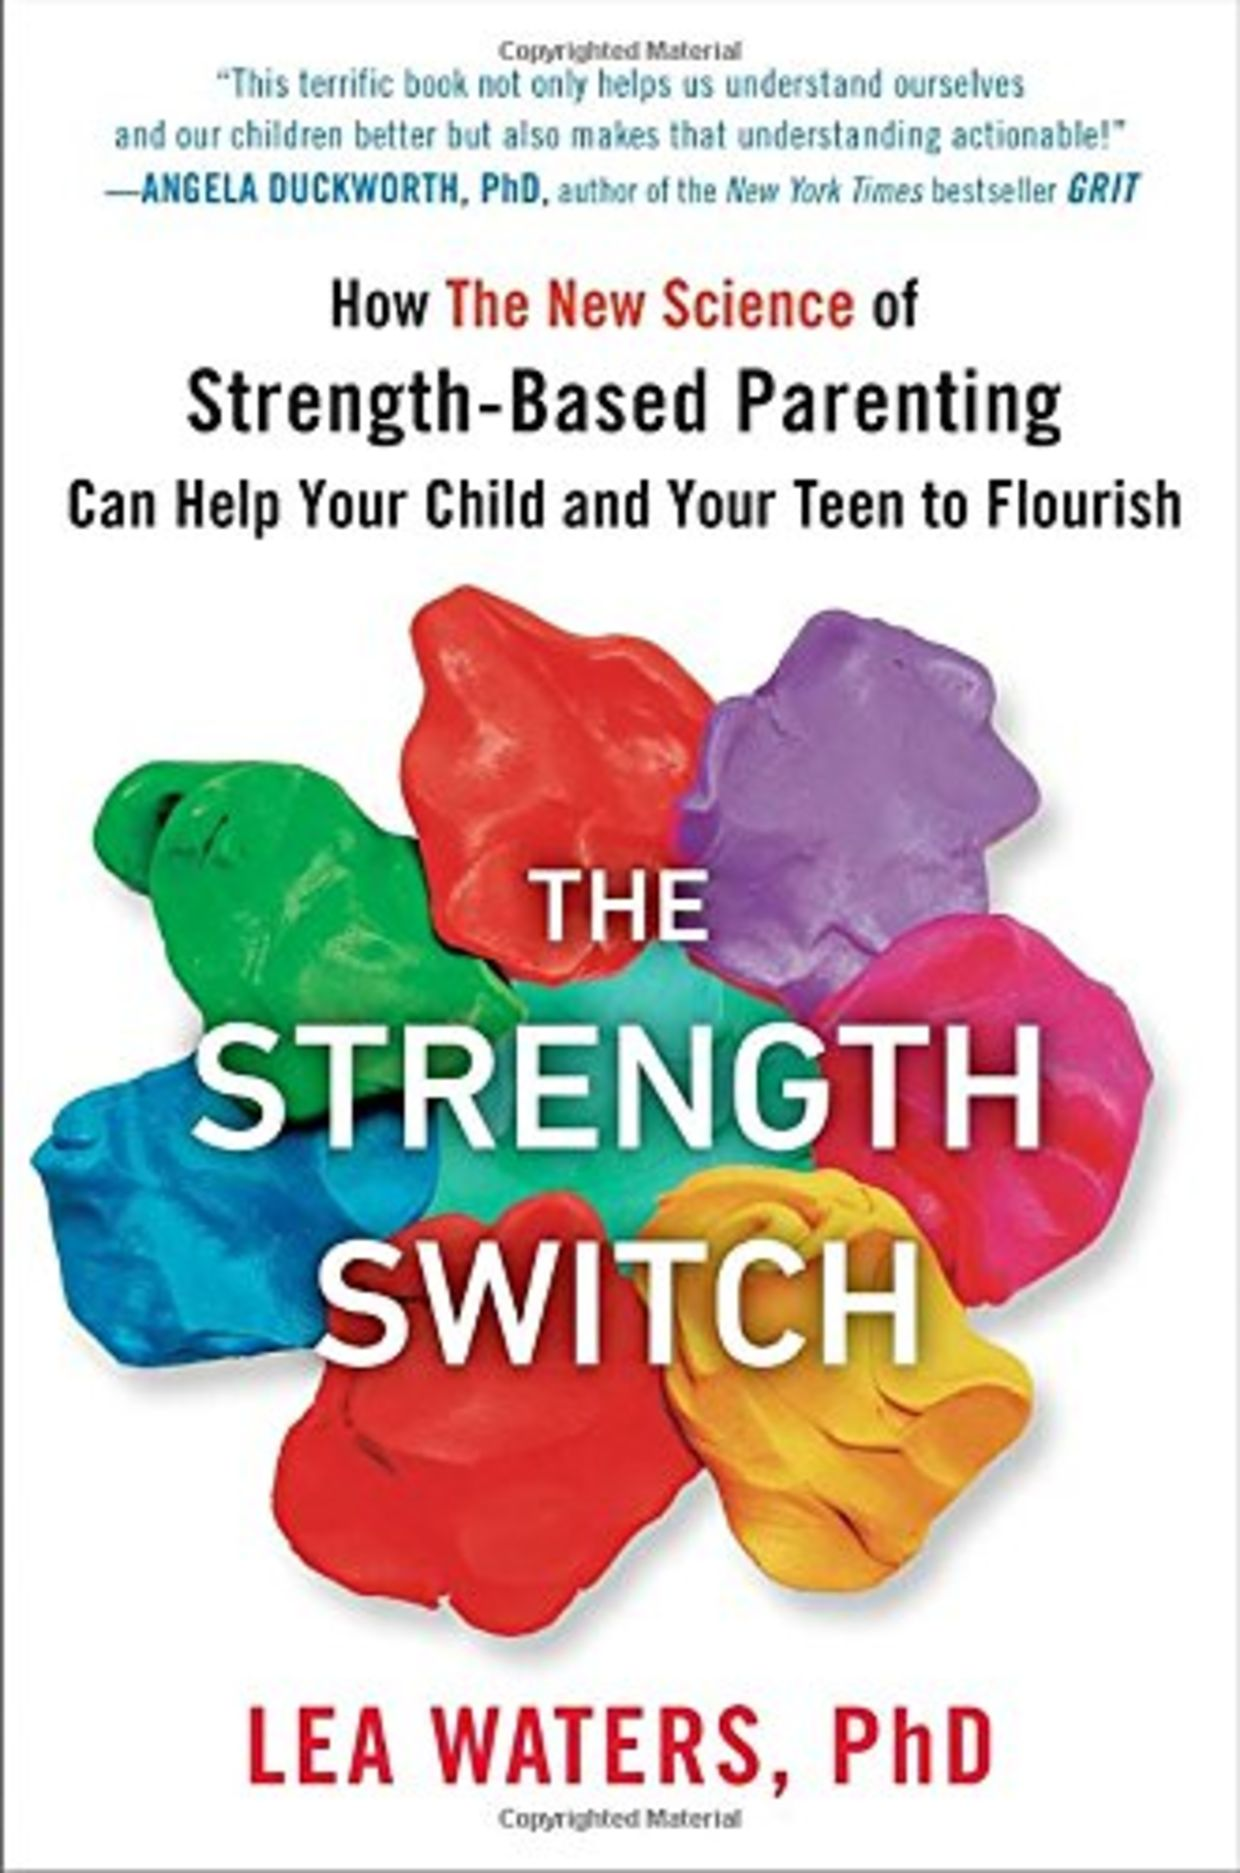 The Strength Switch: How the New Science of Strength-Based Parenting Can Help Your Child and Your Teen to Flourish, by Lea Waters